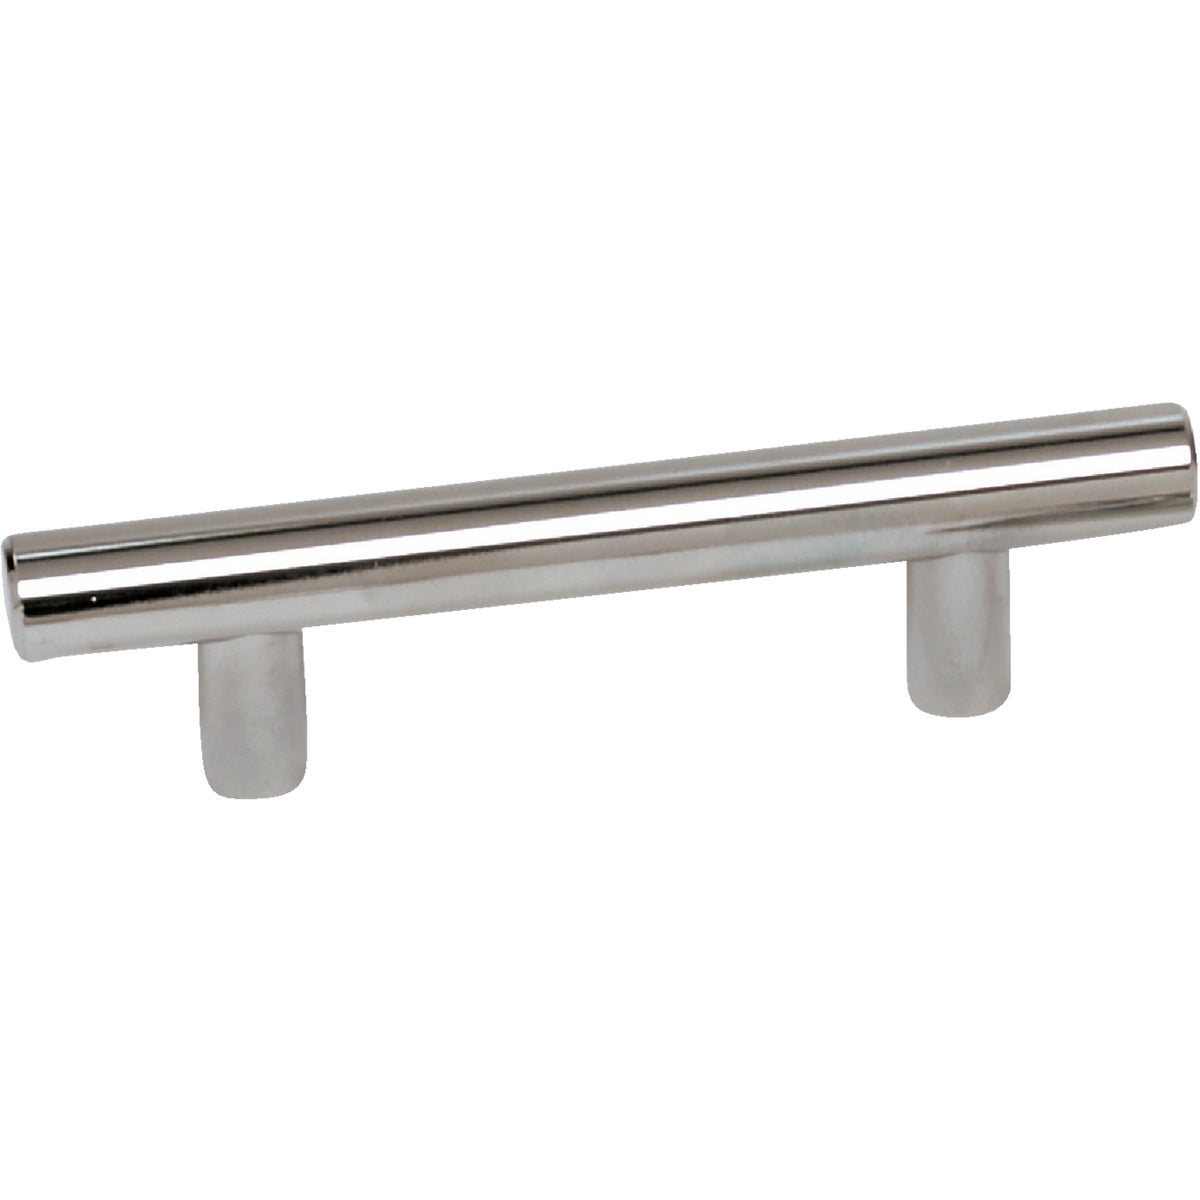 "3"" STAINLESS STEEL PULL - 89011 by Laurey Co"